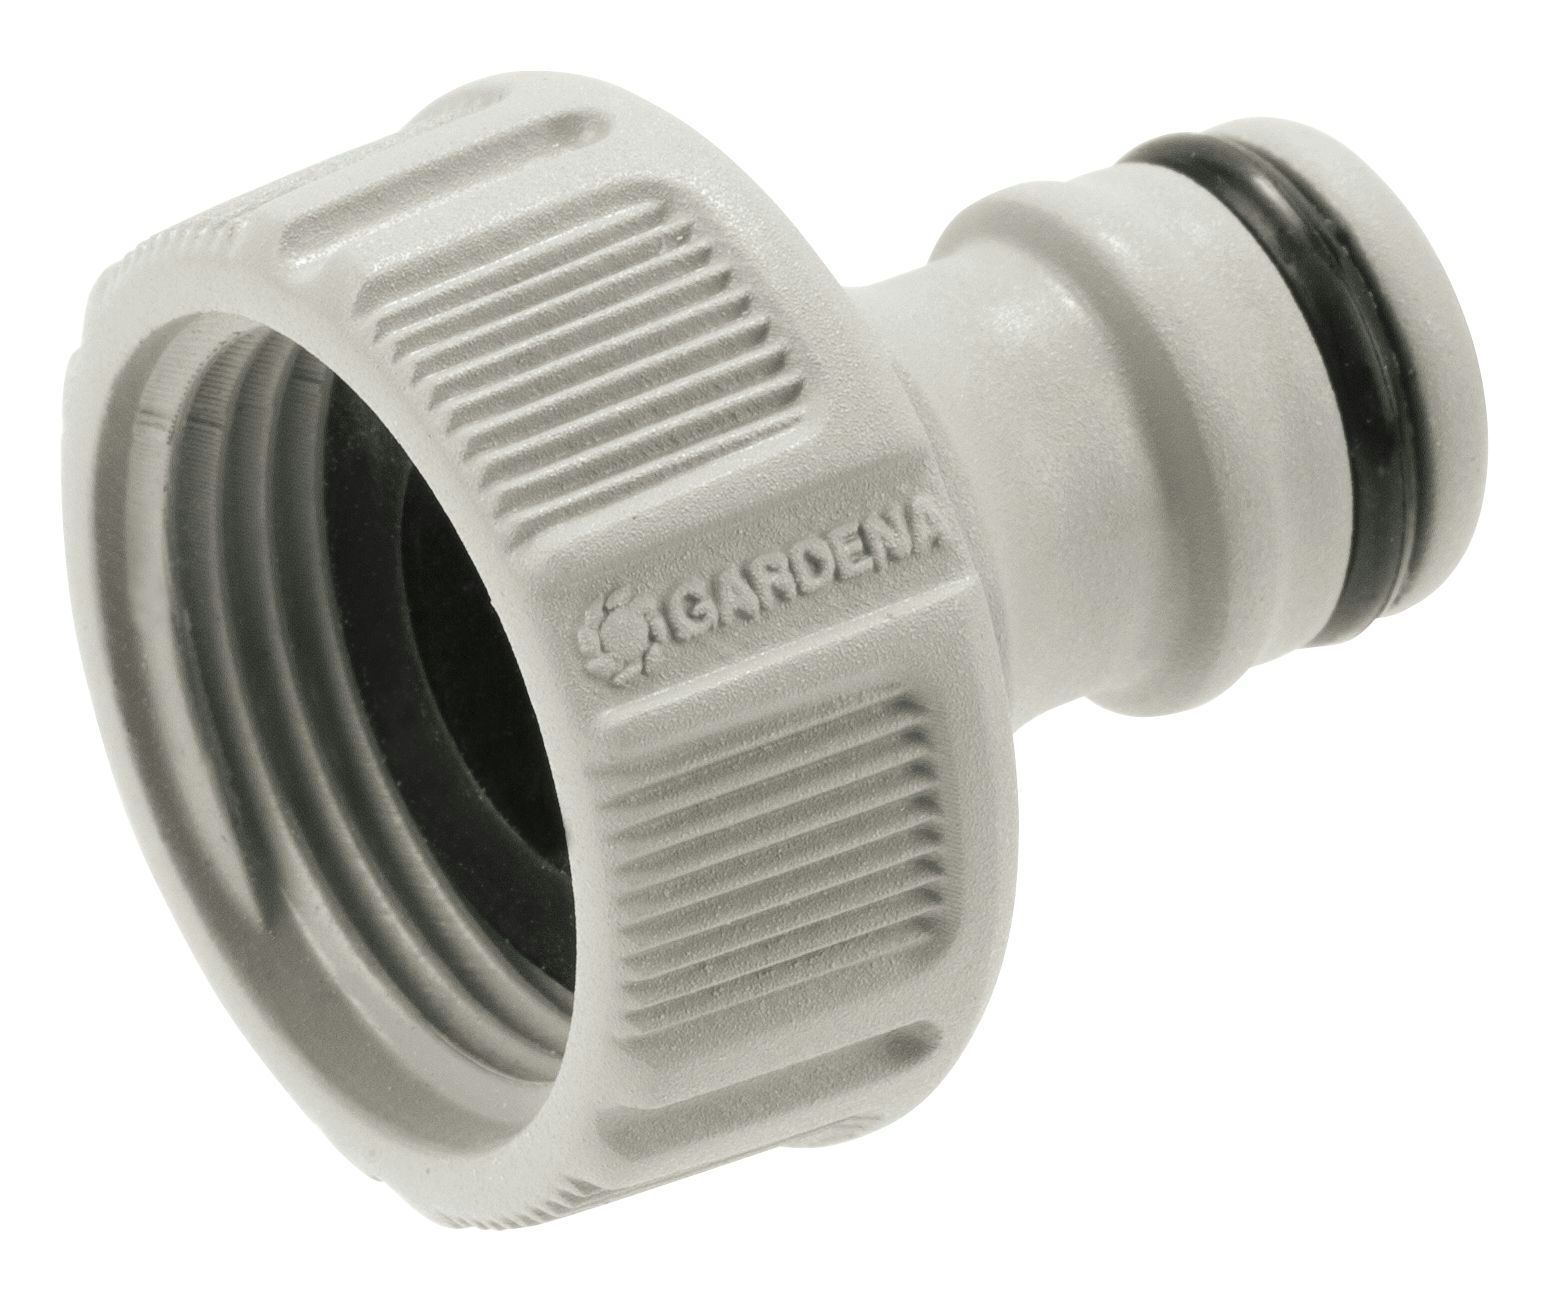 Hozelock 4mm Pressure Regulator 2760 Household Regulators Gardena